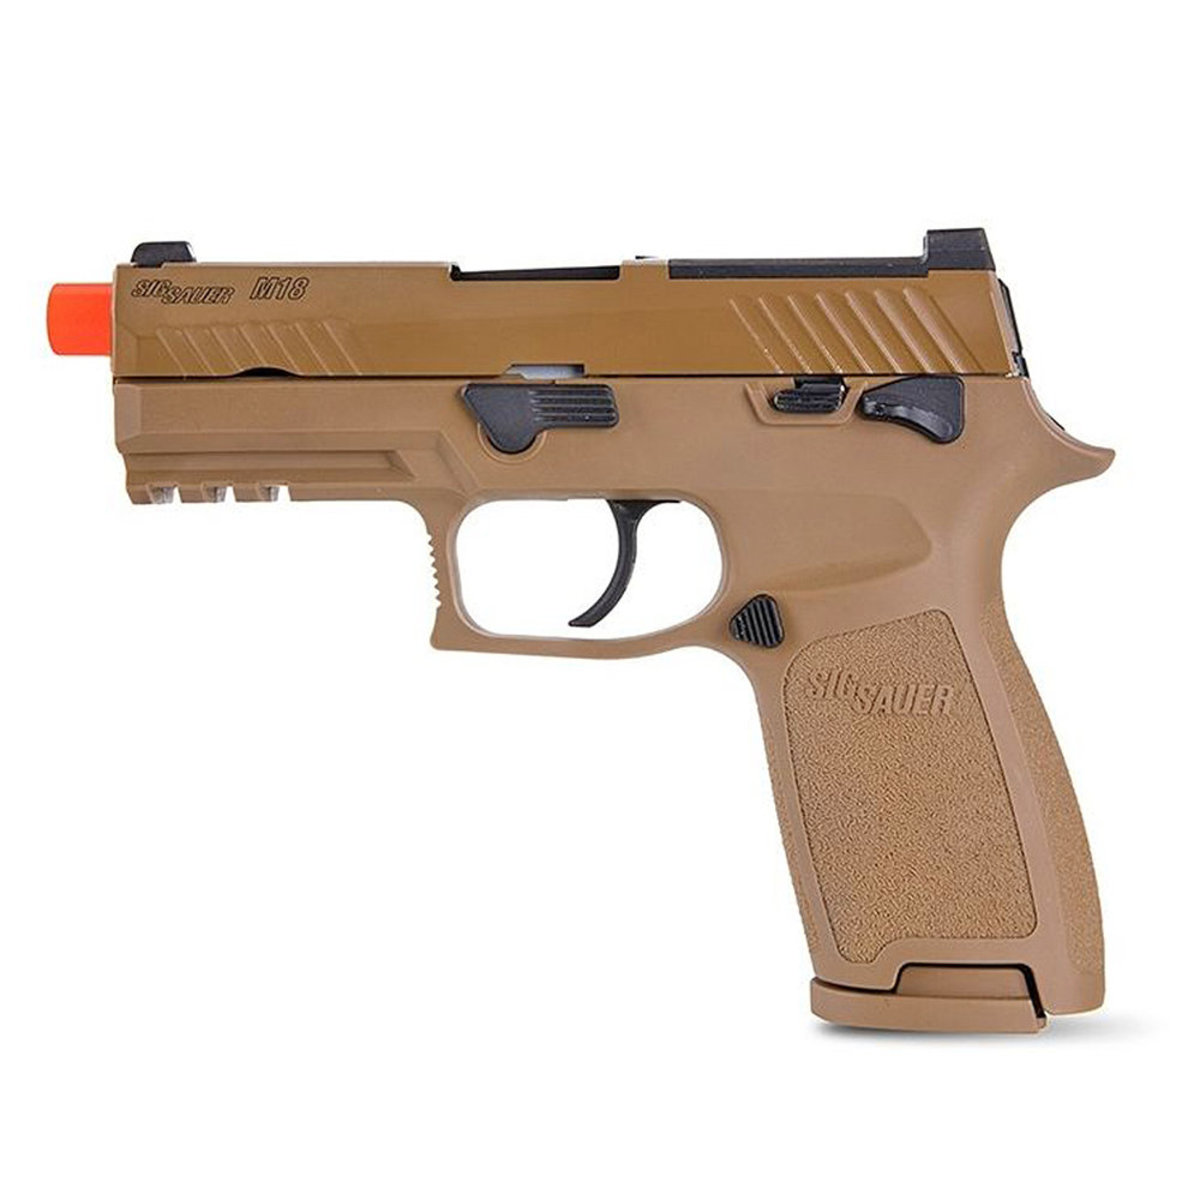 View larger image of Sig Sauer ProForce M18 Gas Airsoft Pistol